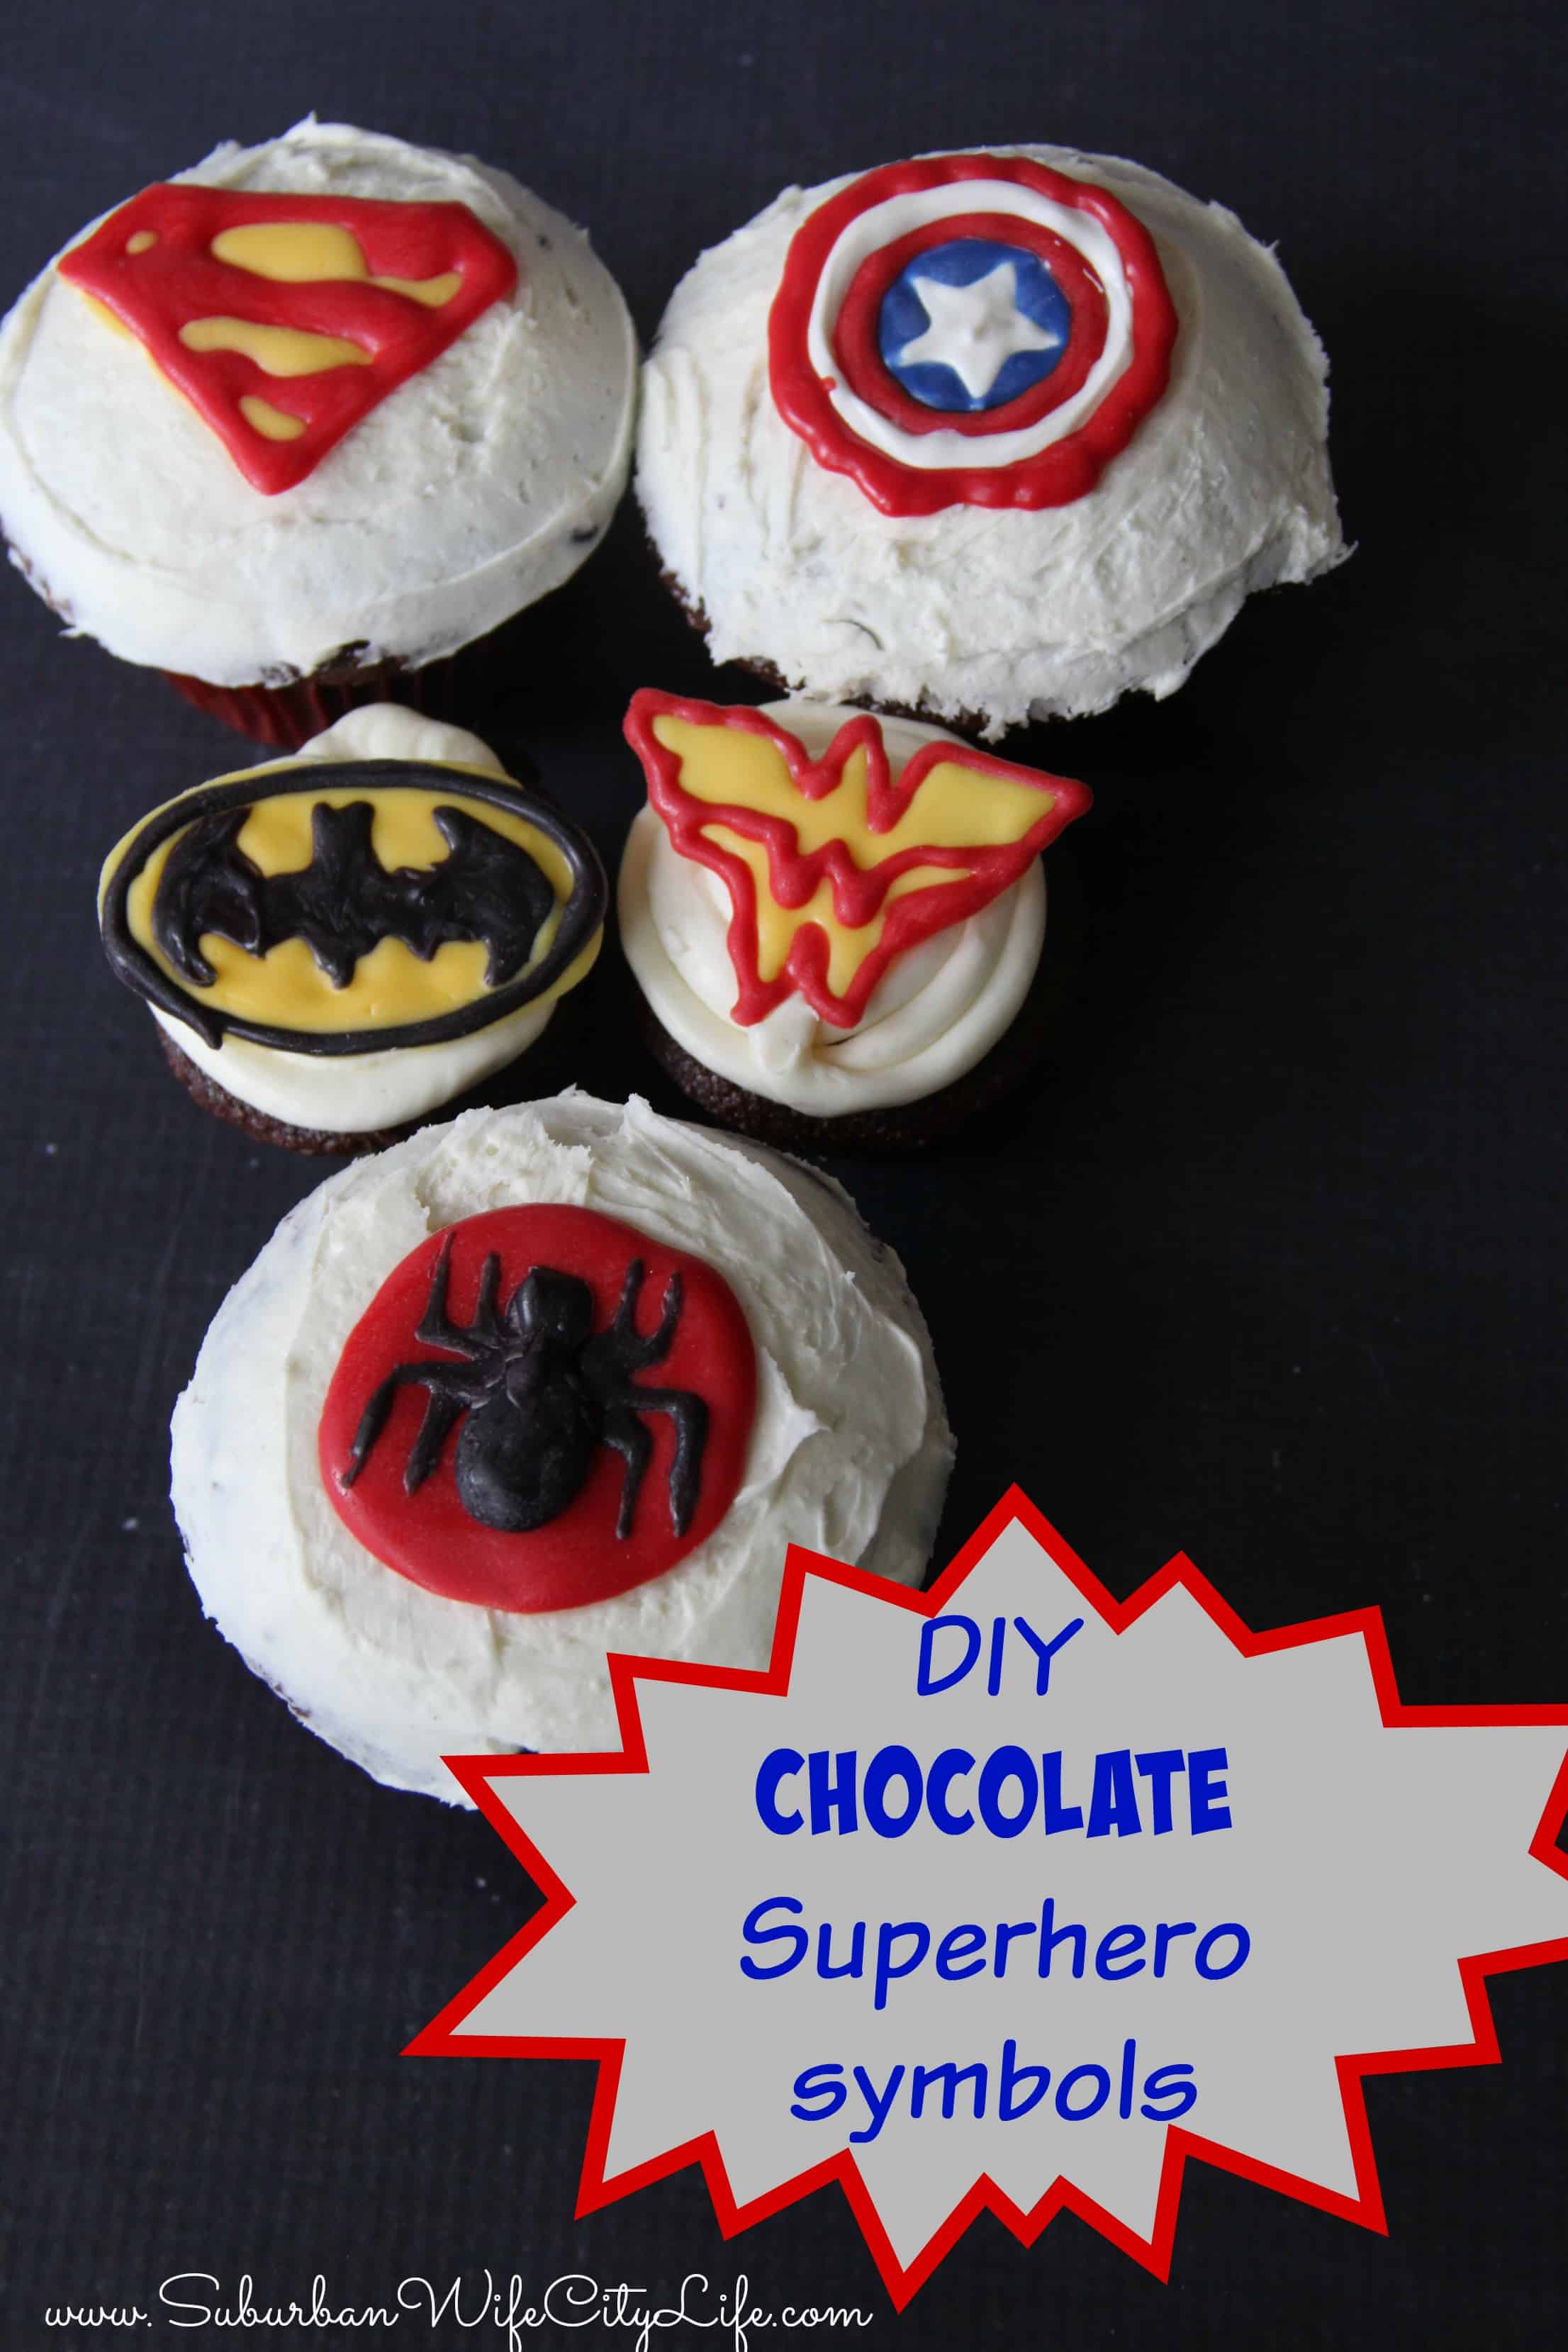 DIY- Chocolate Superhero Symbols